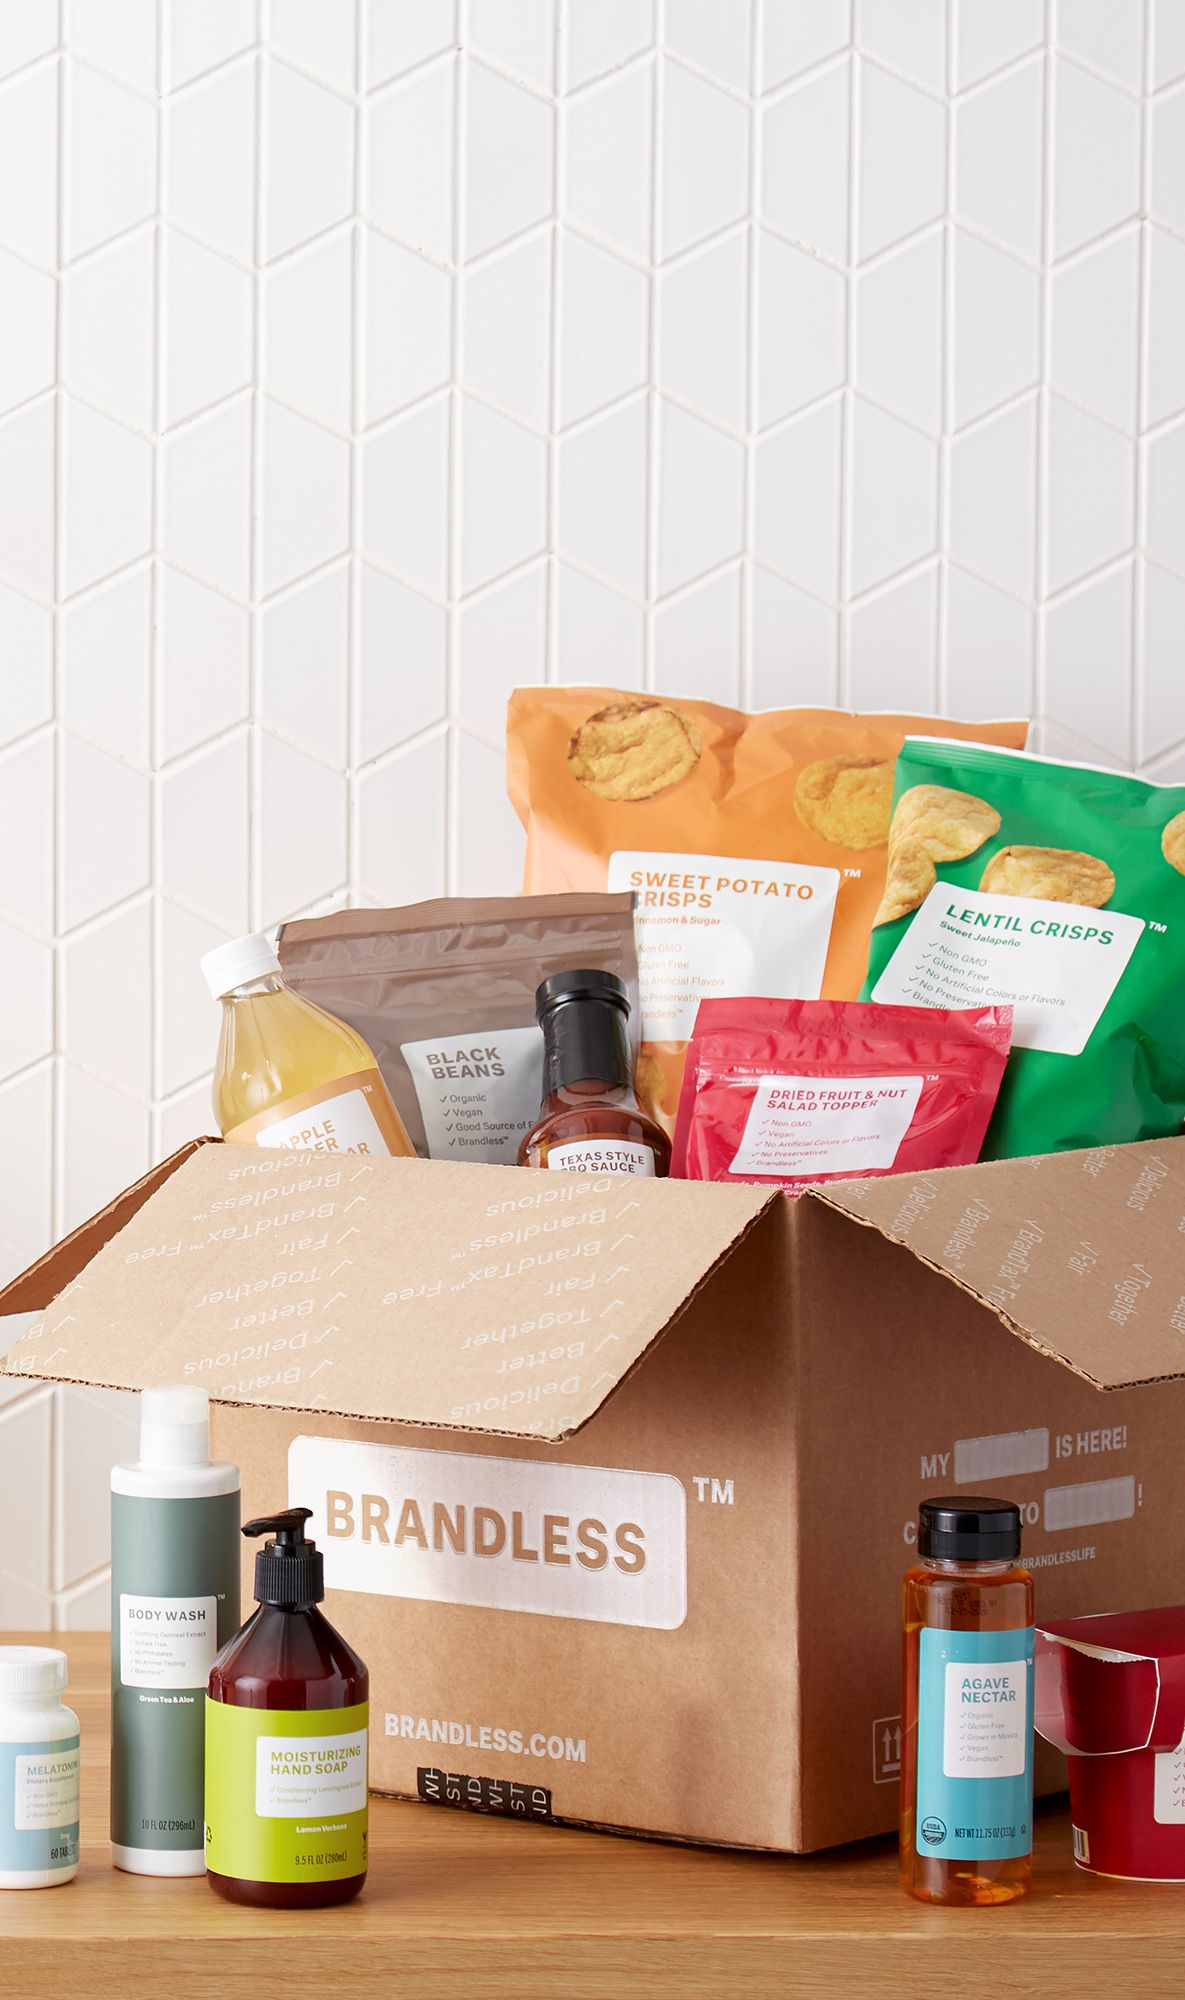 Start Building Your Brandless Box Today With Vegetarian And Vegan Essentials Shopping Is Simple Brandless Vegan Essentials Organic Recipes